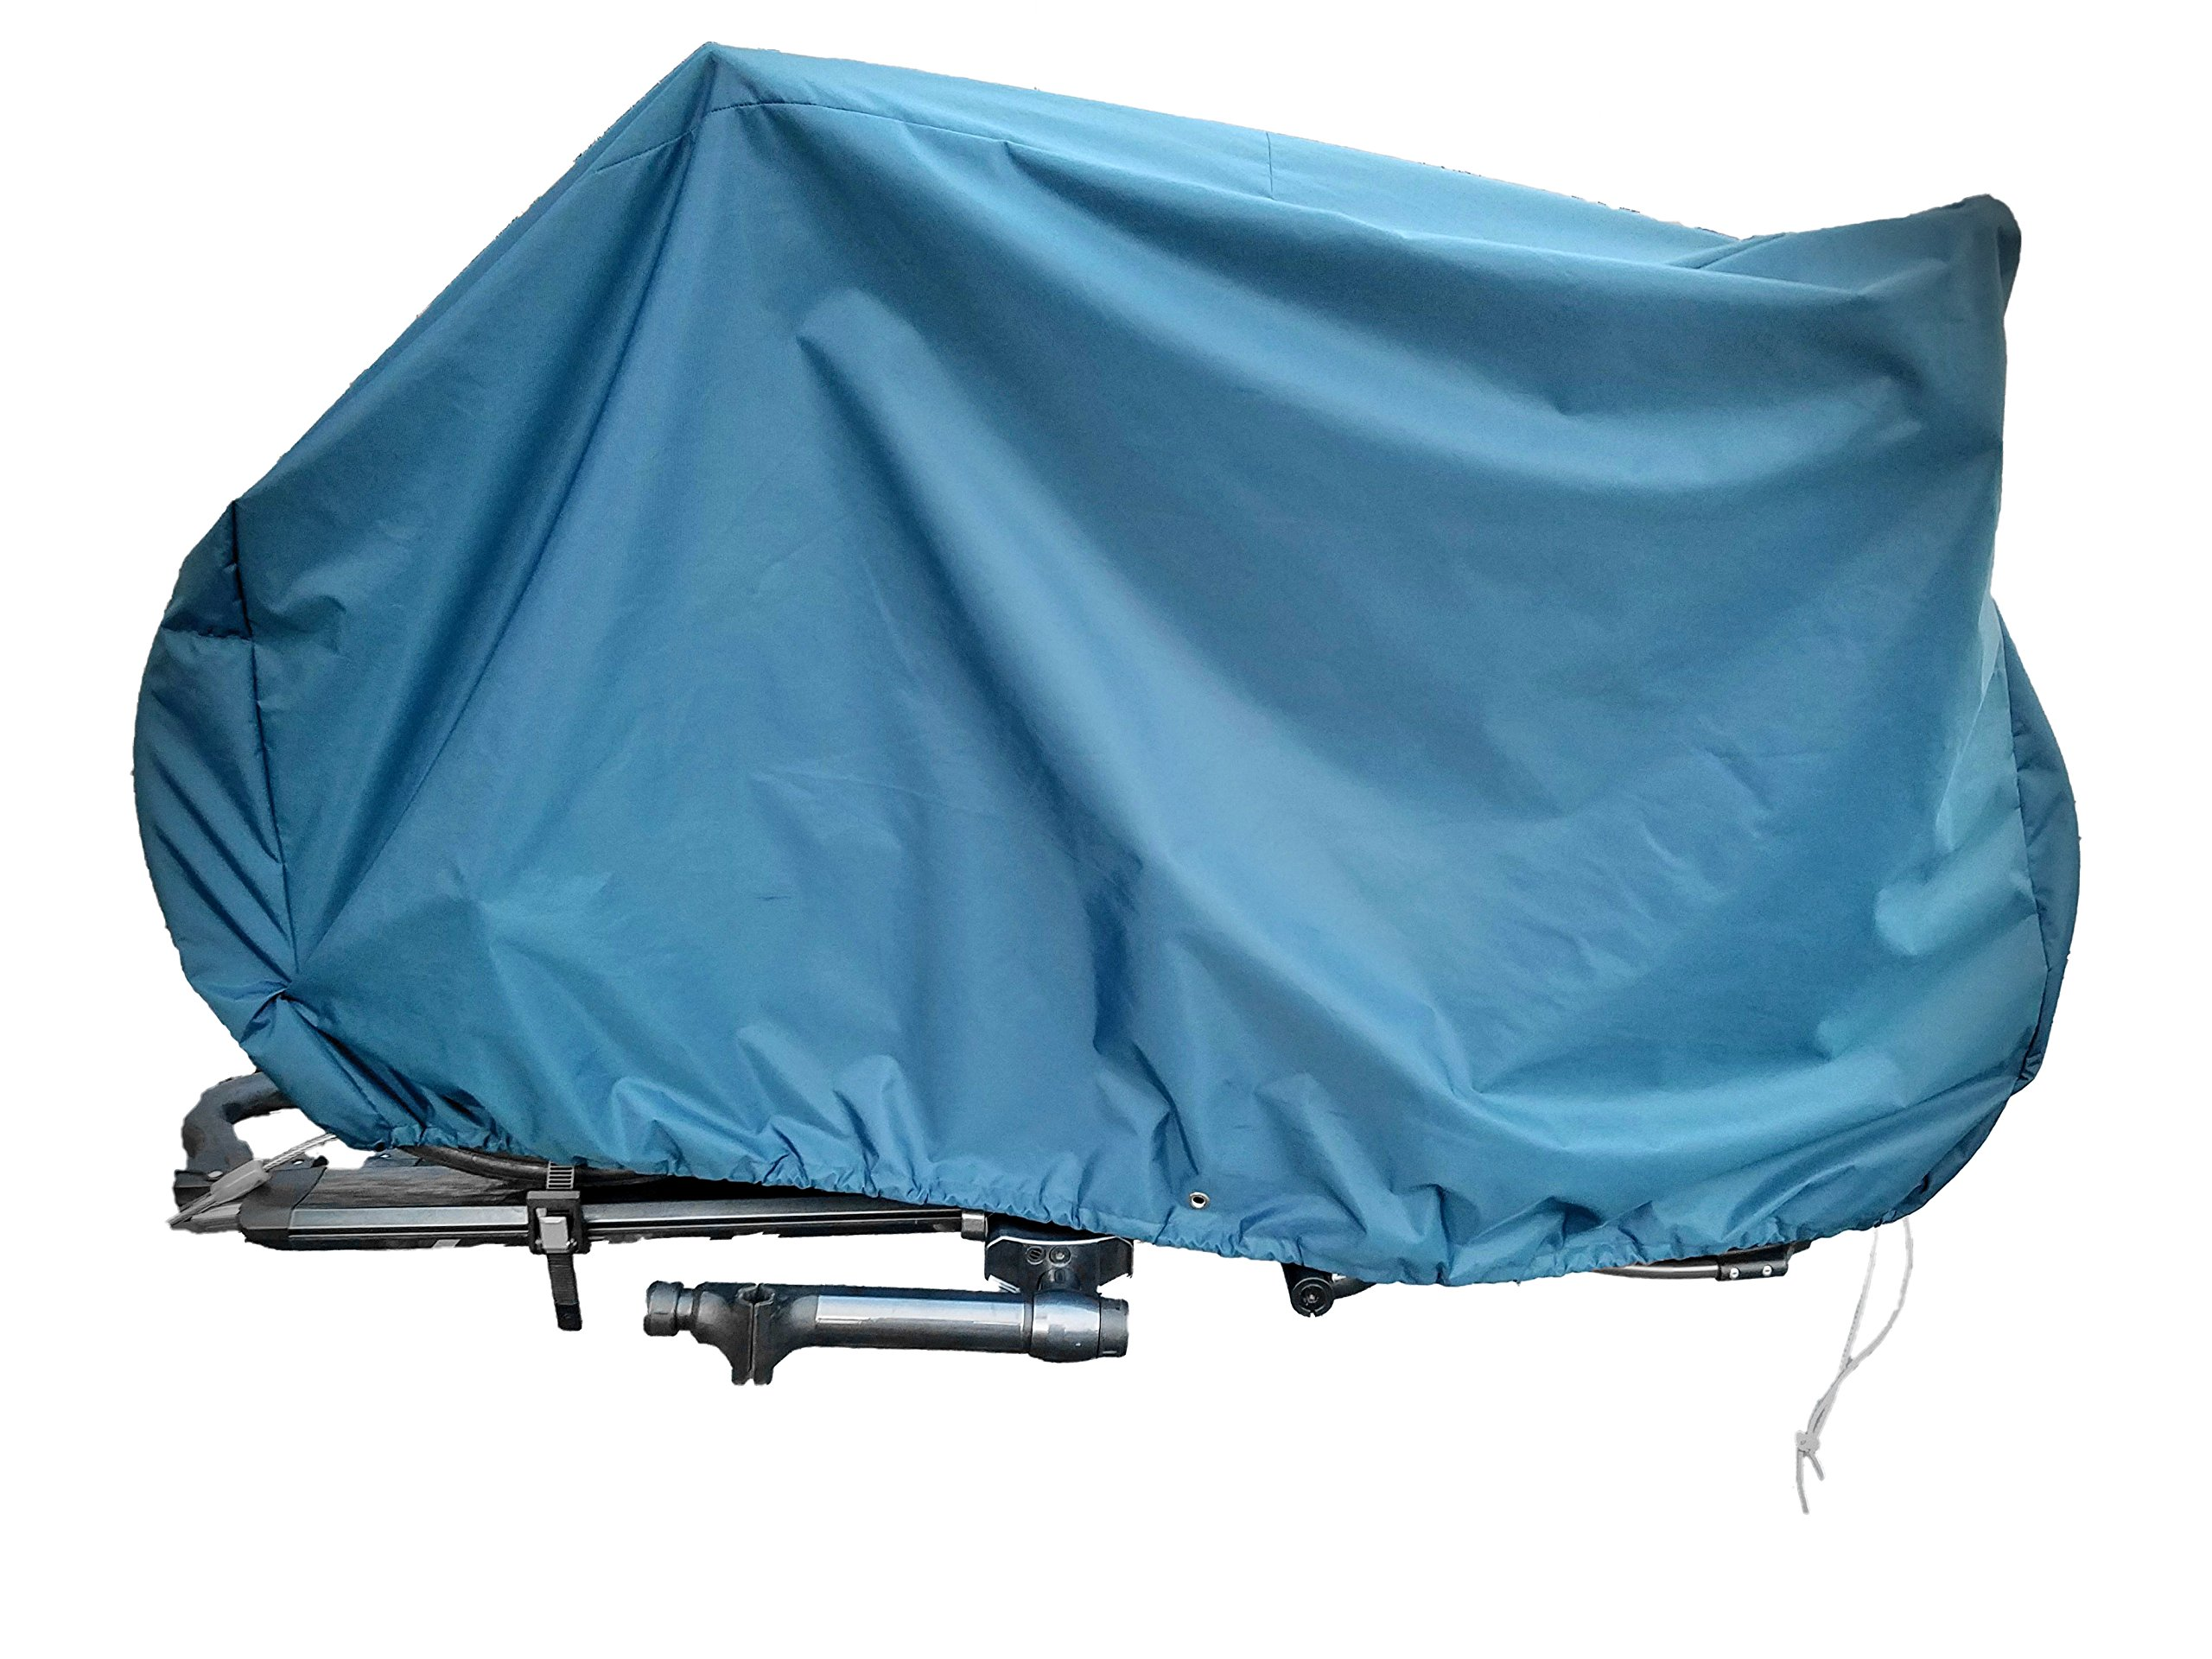 Heavy-duty bike cover for hitch-mount bike racks by OVERCOVERED (Image #2)